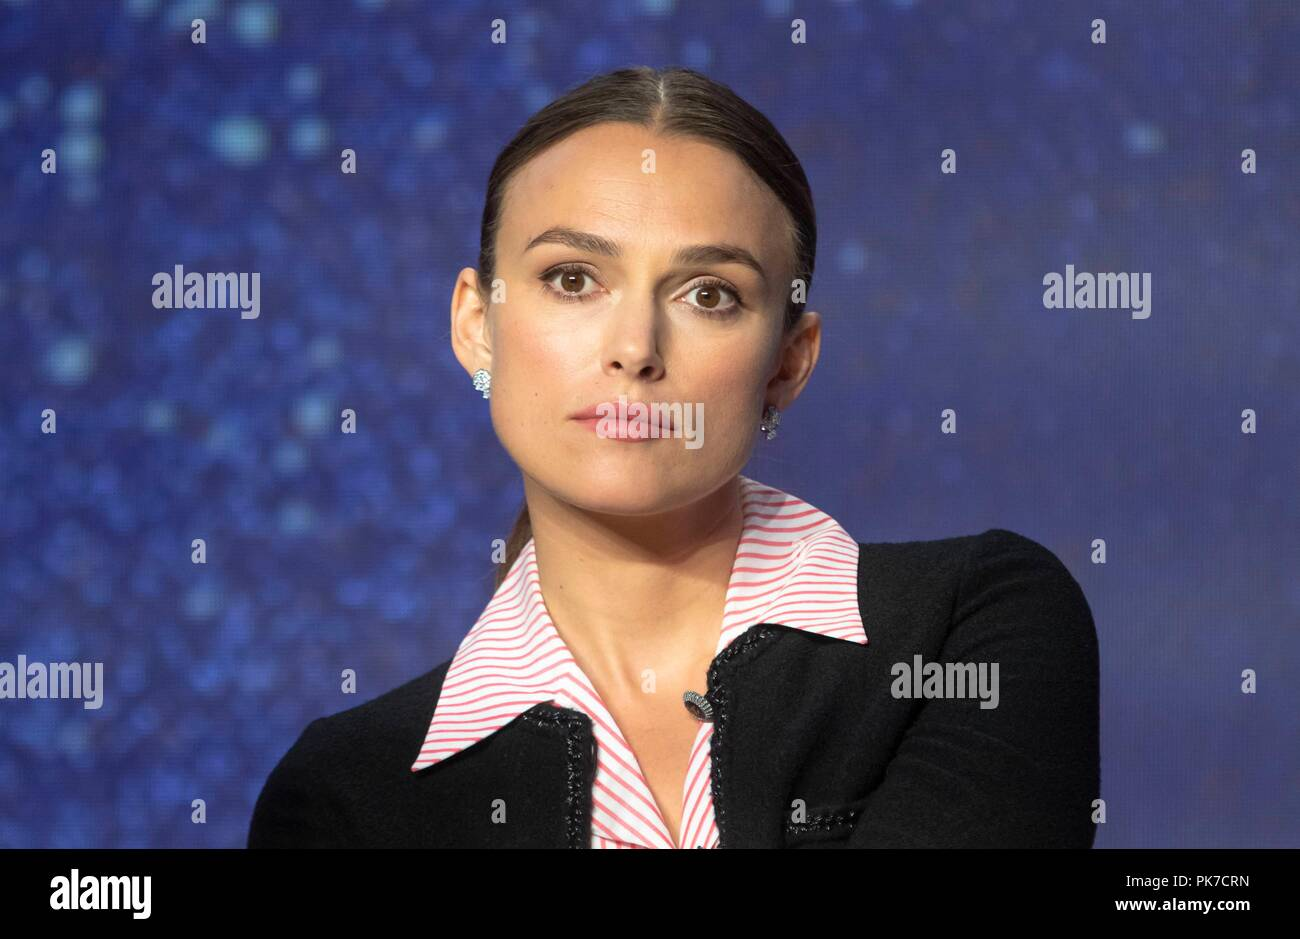 Keira Knightley attends the press conference of 'Colette' during the 43rd Toronto International Film Festival, tiff, at Bell Lightbox in Toronto, Canada, on 10 September 2018. | usage worldwide - Stock Image